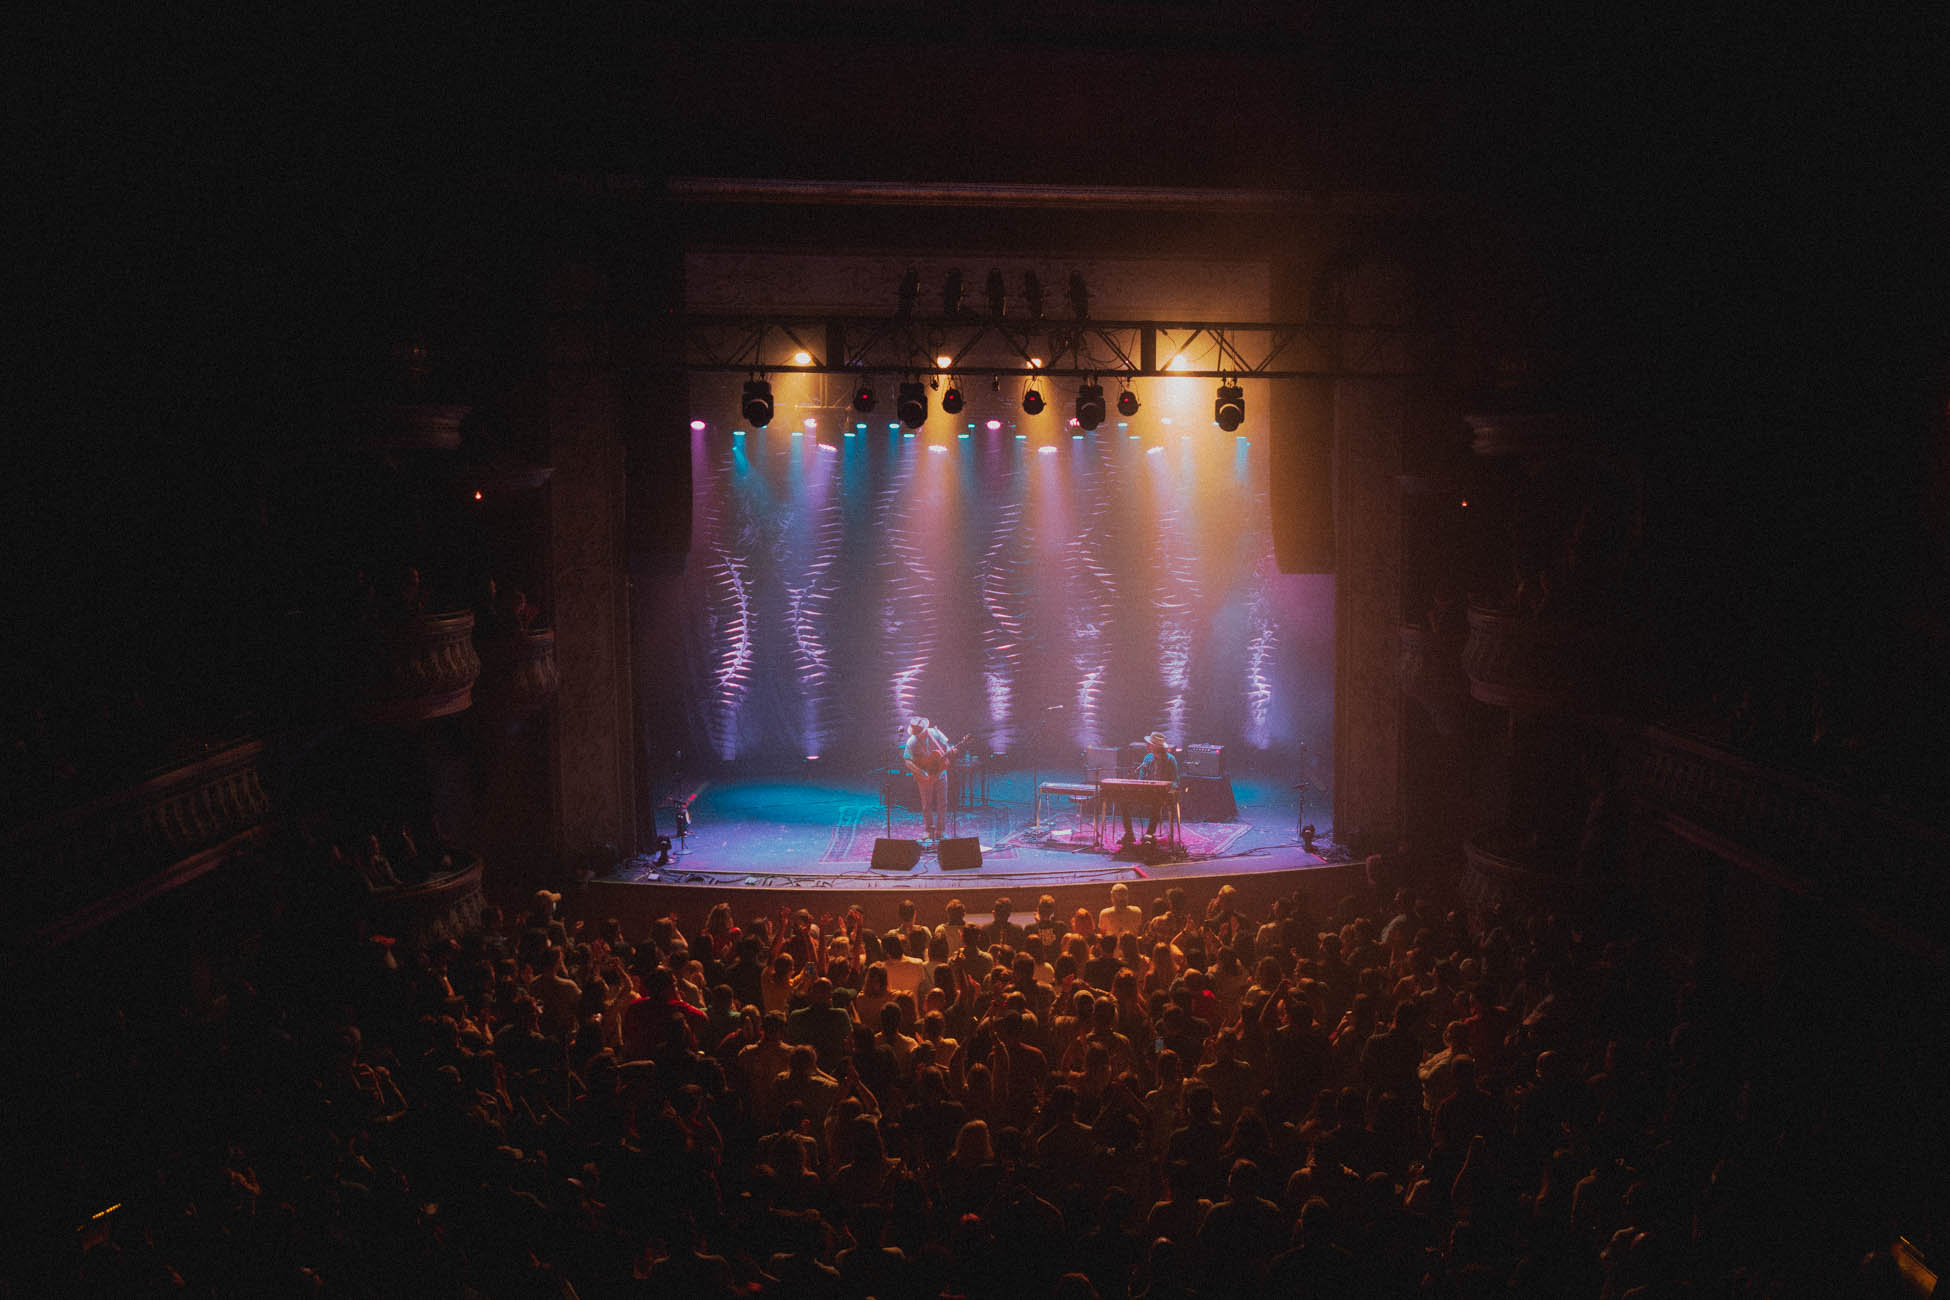 CITY AND COLOUR - Chicago, IL - September 27th, 2021